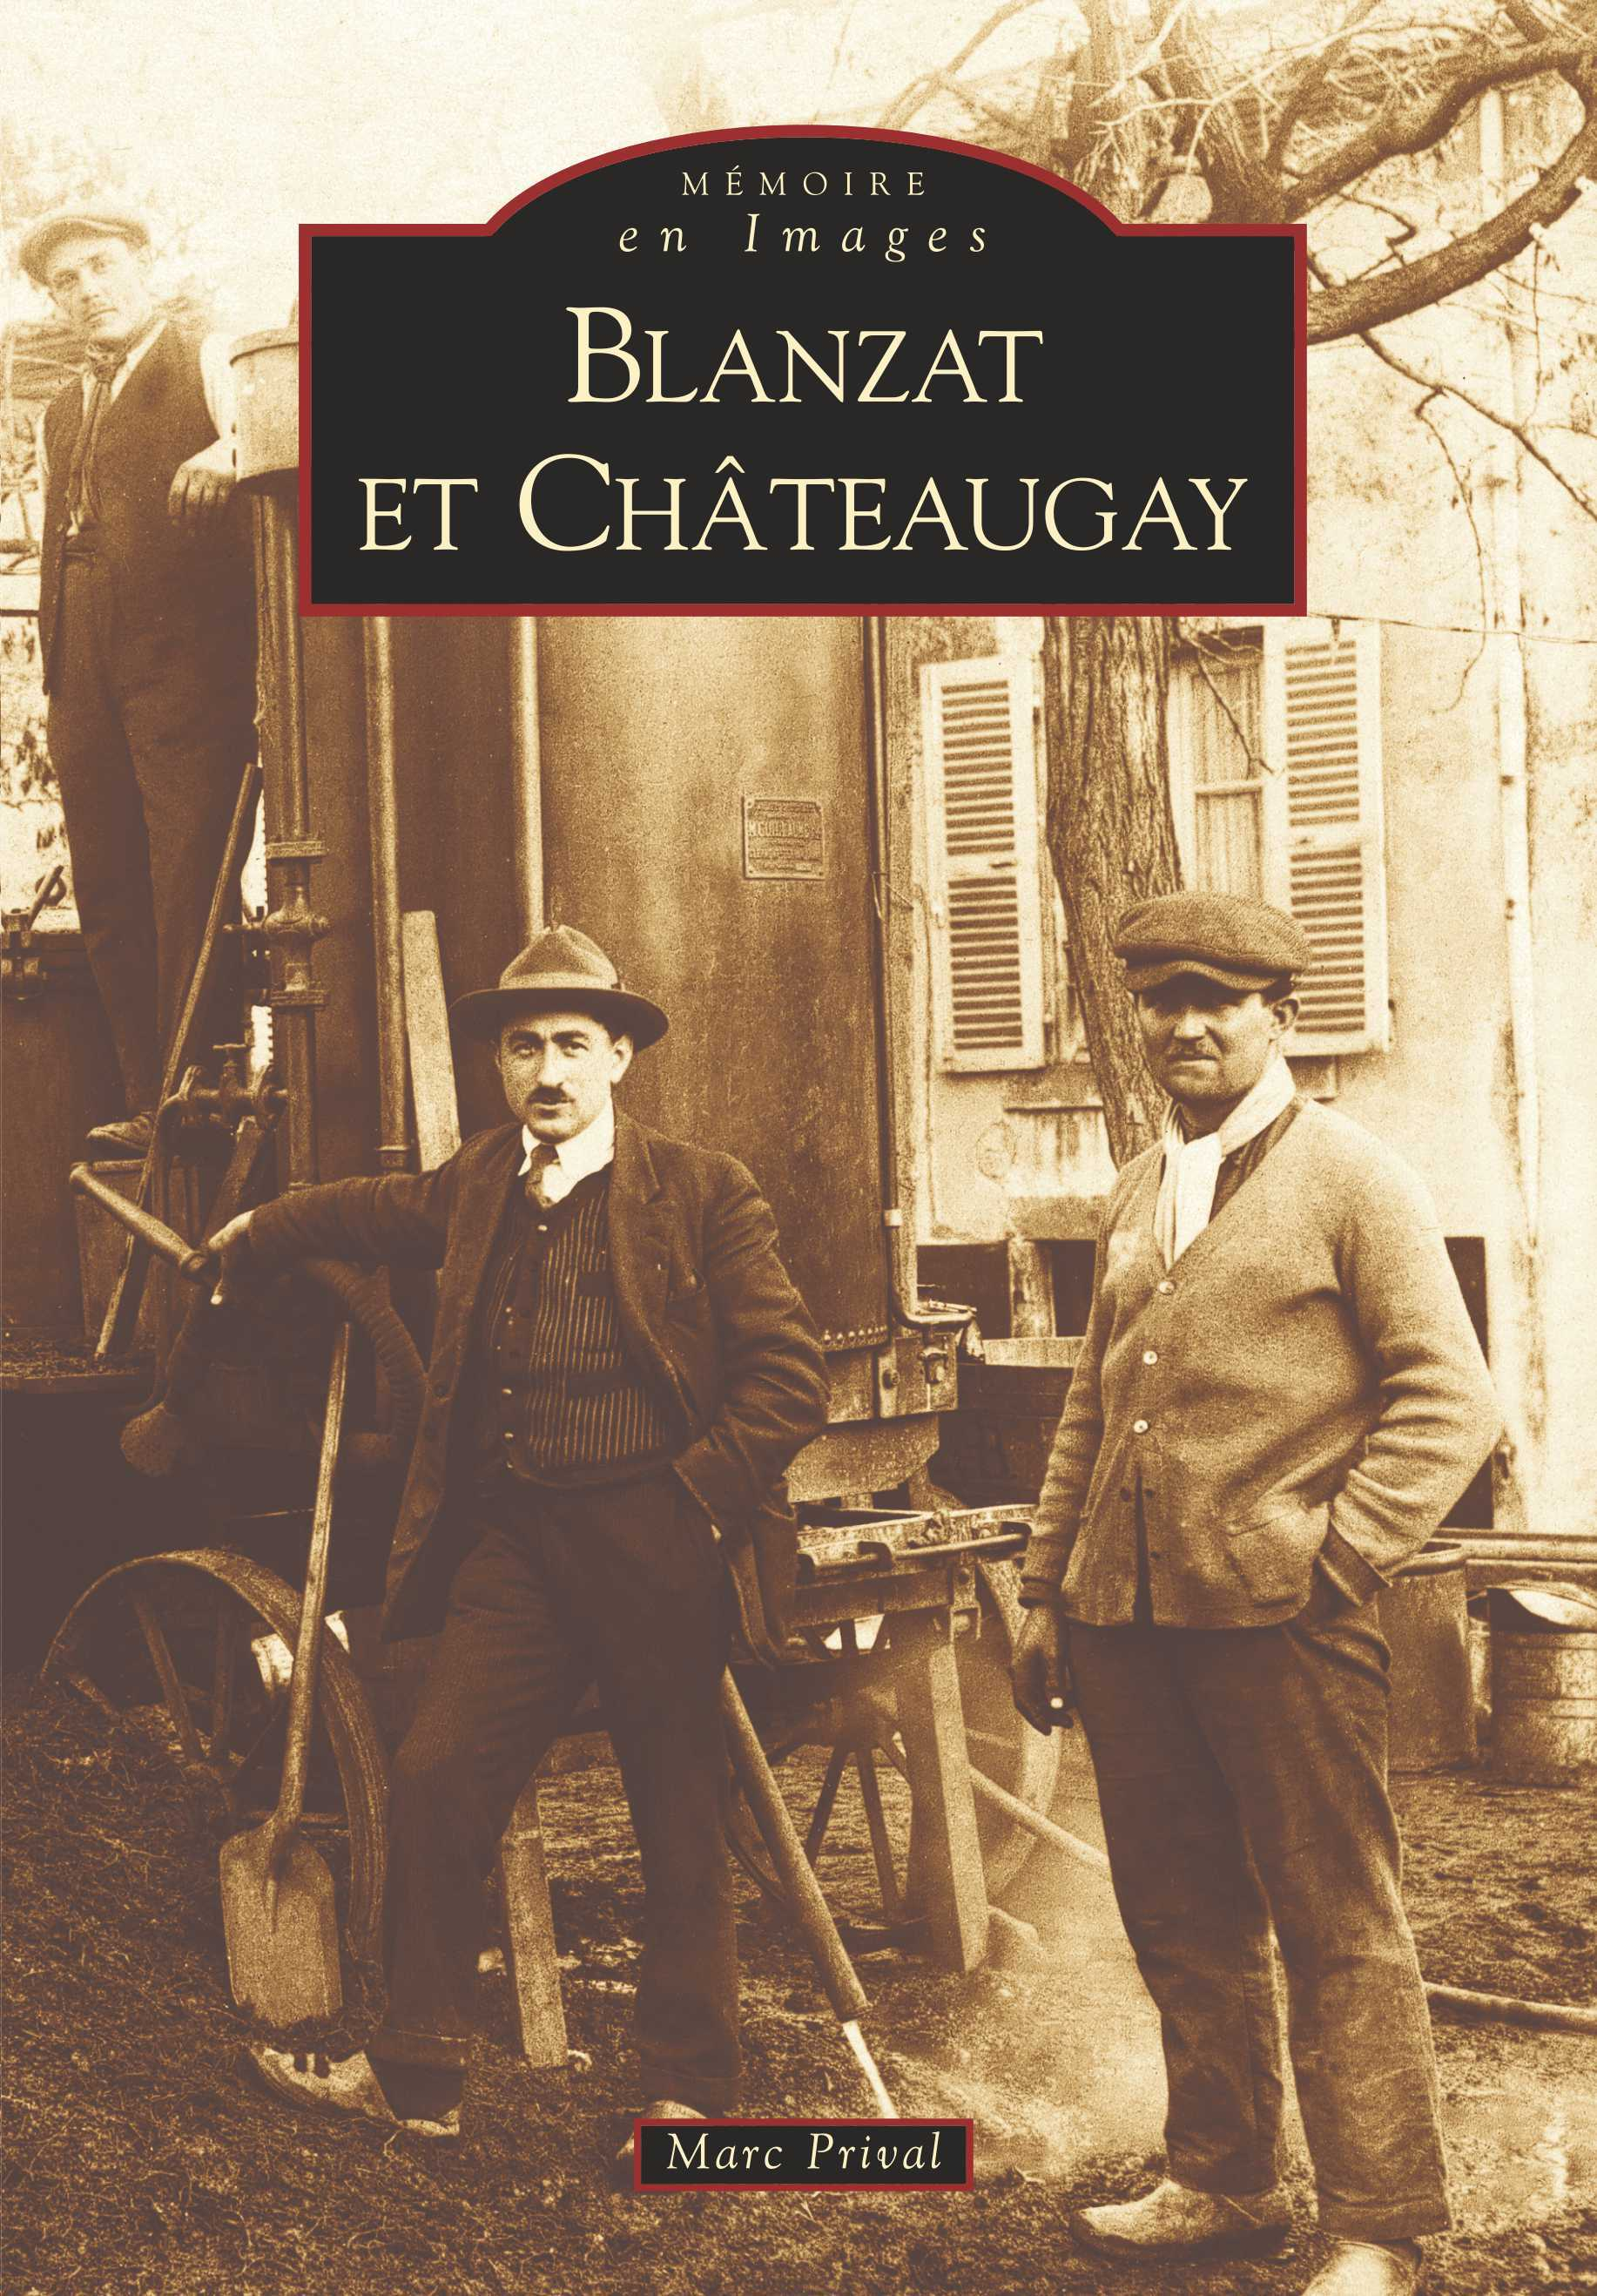 BLANZAT ET CHATEAUGAY